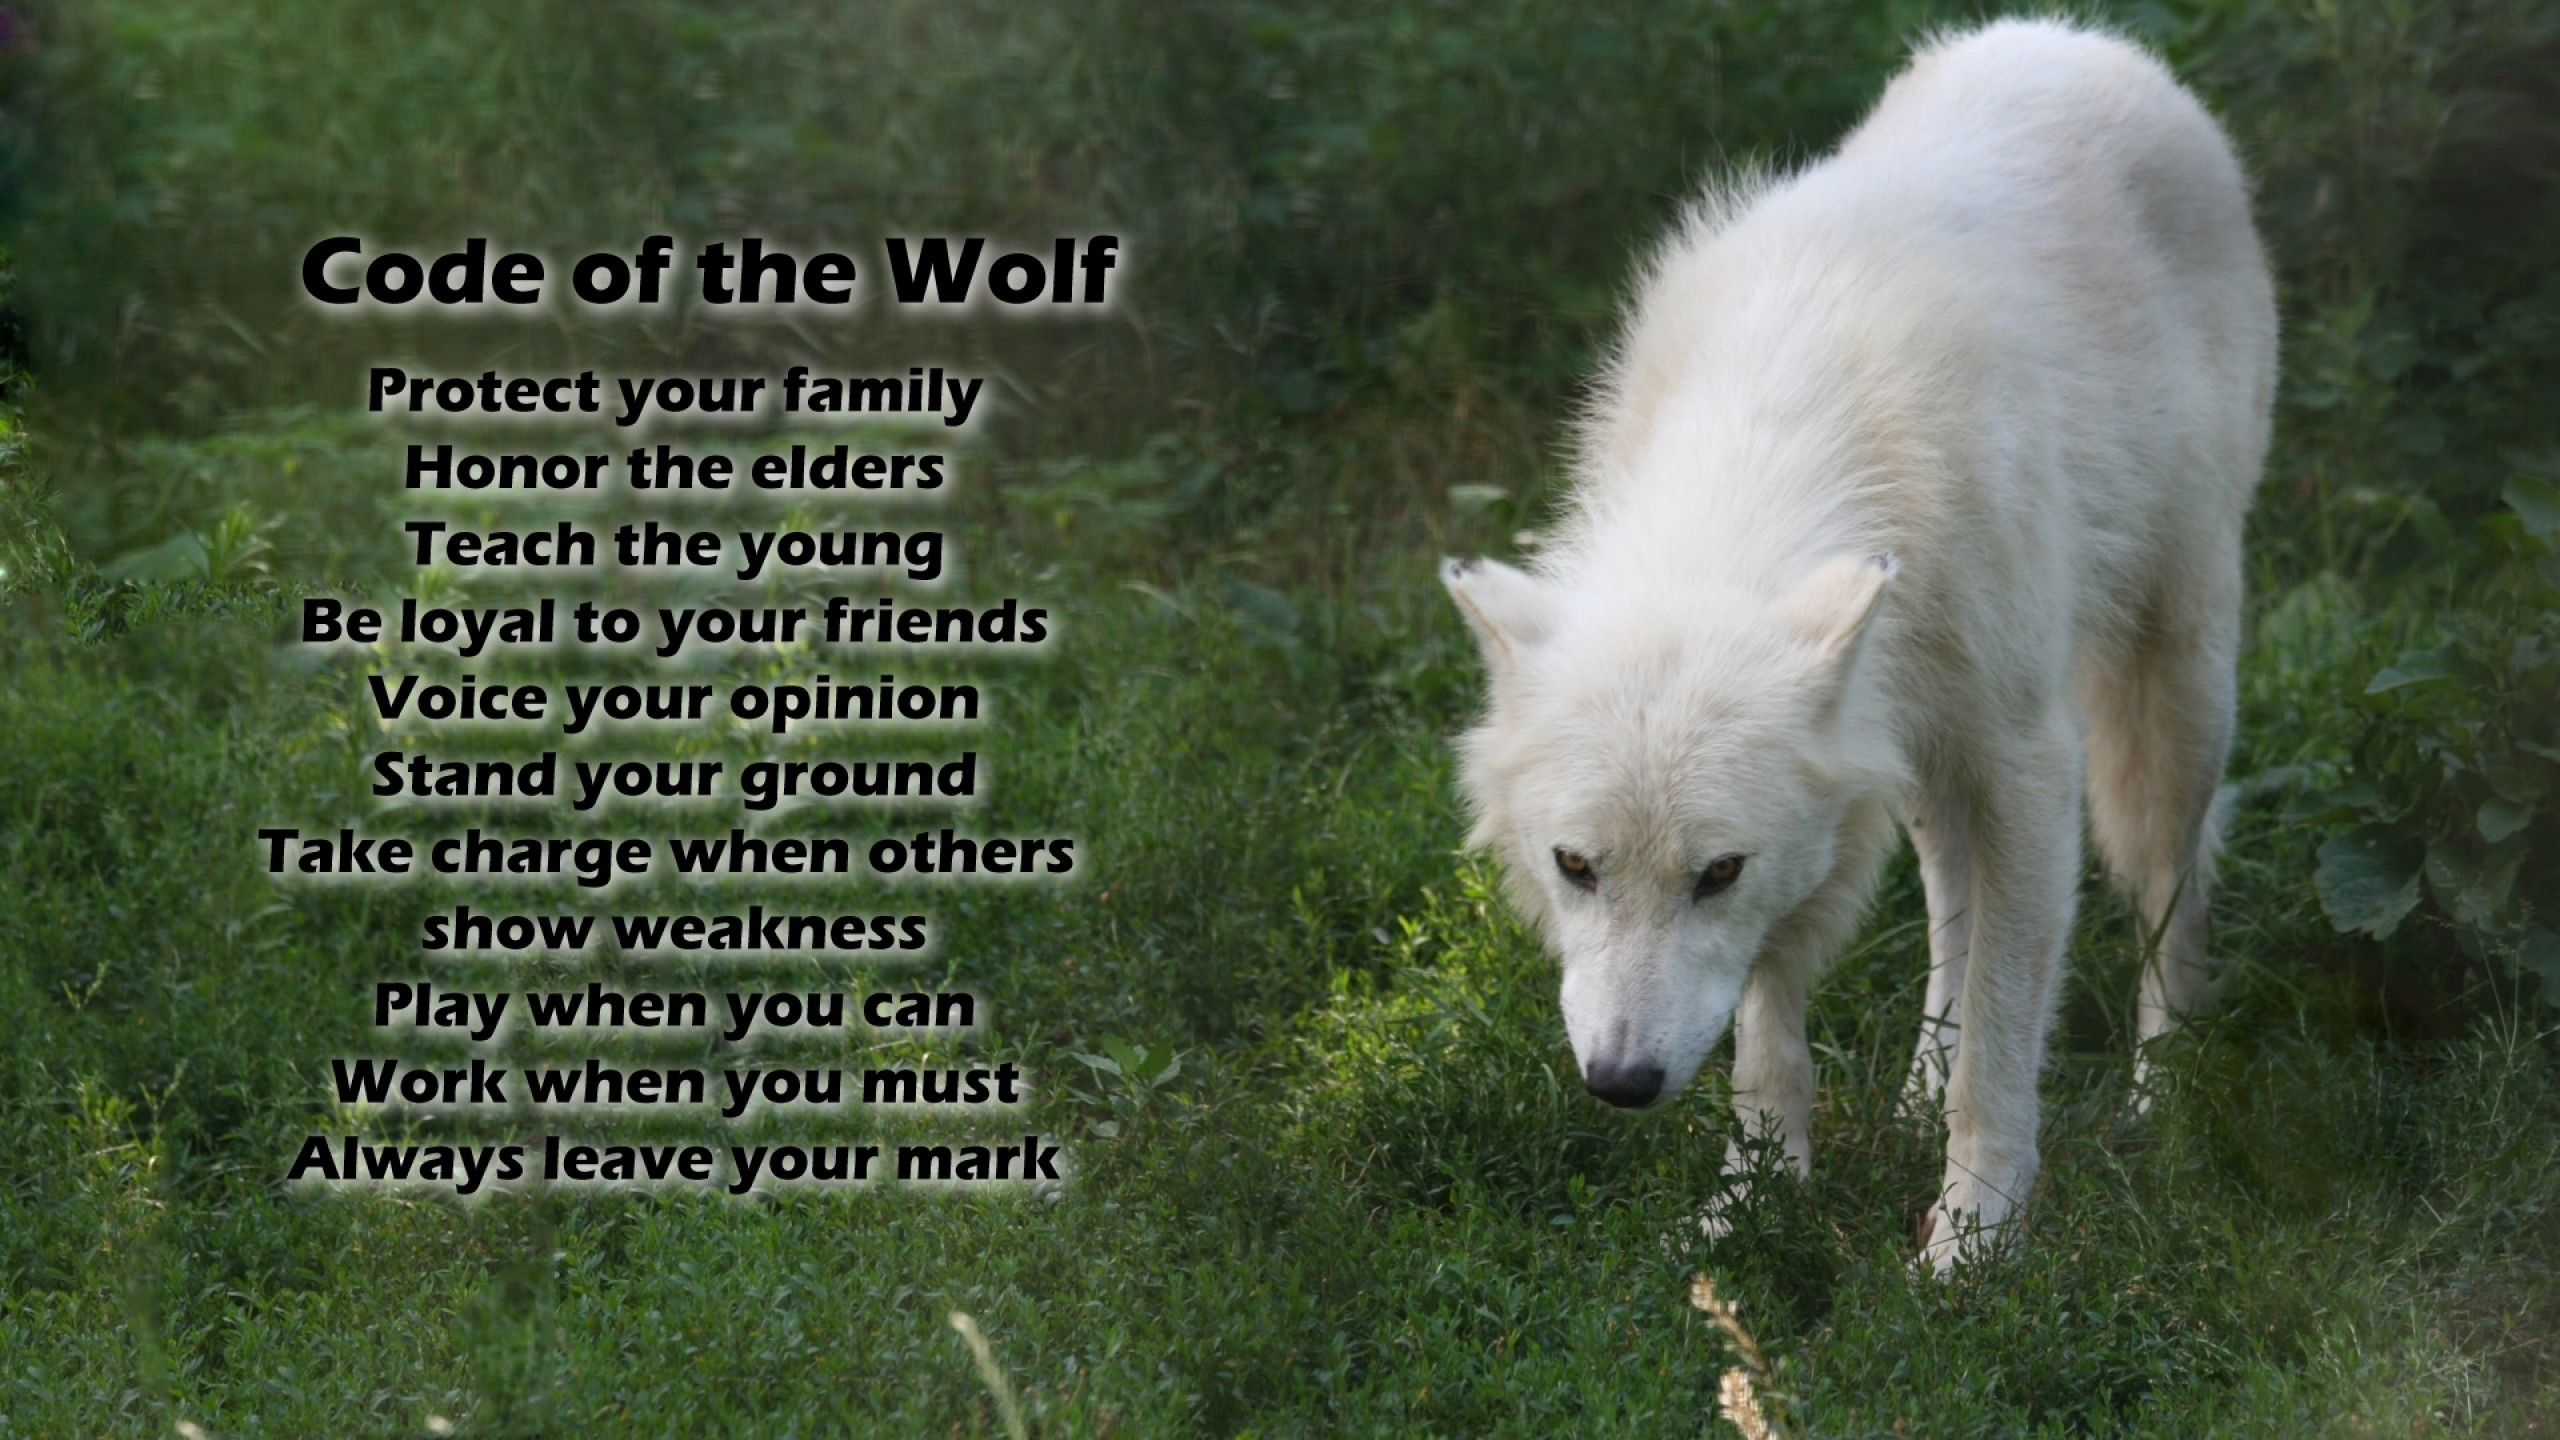 Free desktop wallpapers and backgrounds with code of the wolf, code, nice,  white, wolf. Wallpapers no.